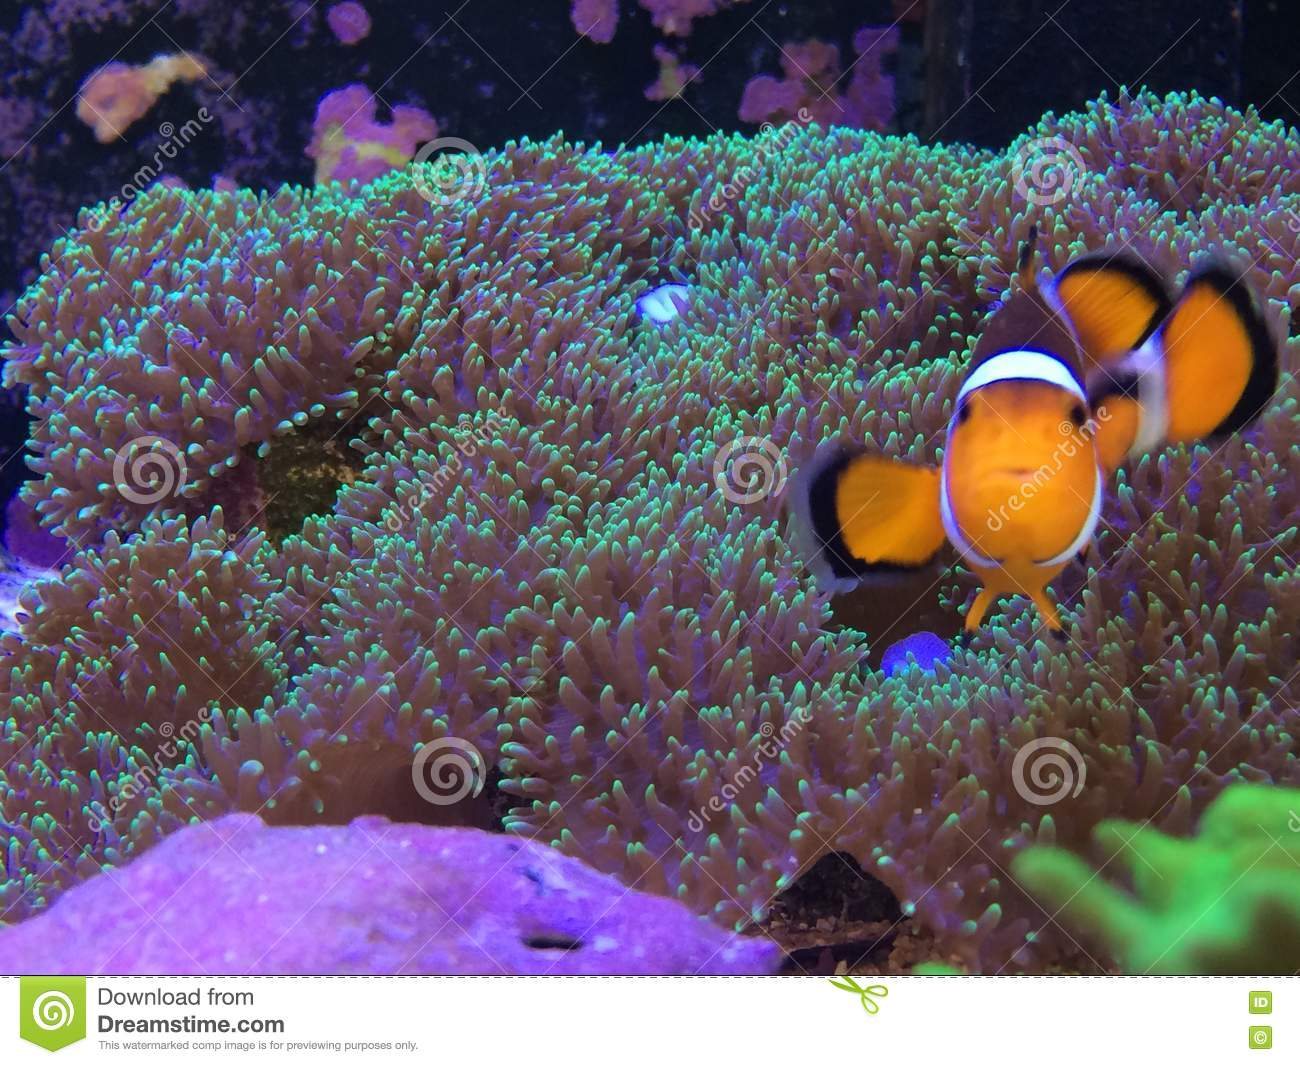 Fish in nemo aquarium - Finding Nemo On A Real Fish Tank Playing On A Mushroom Coral Stock Photos